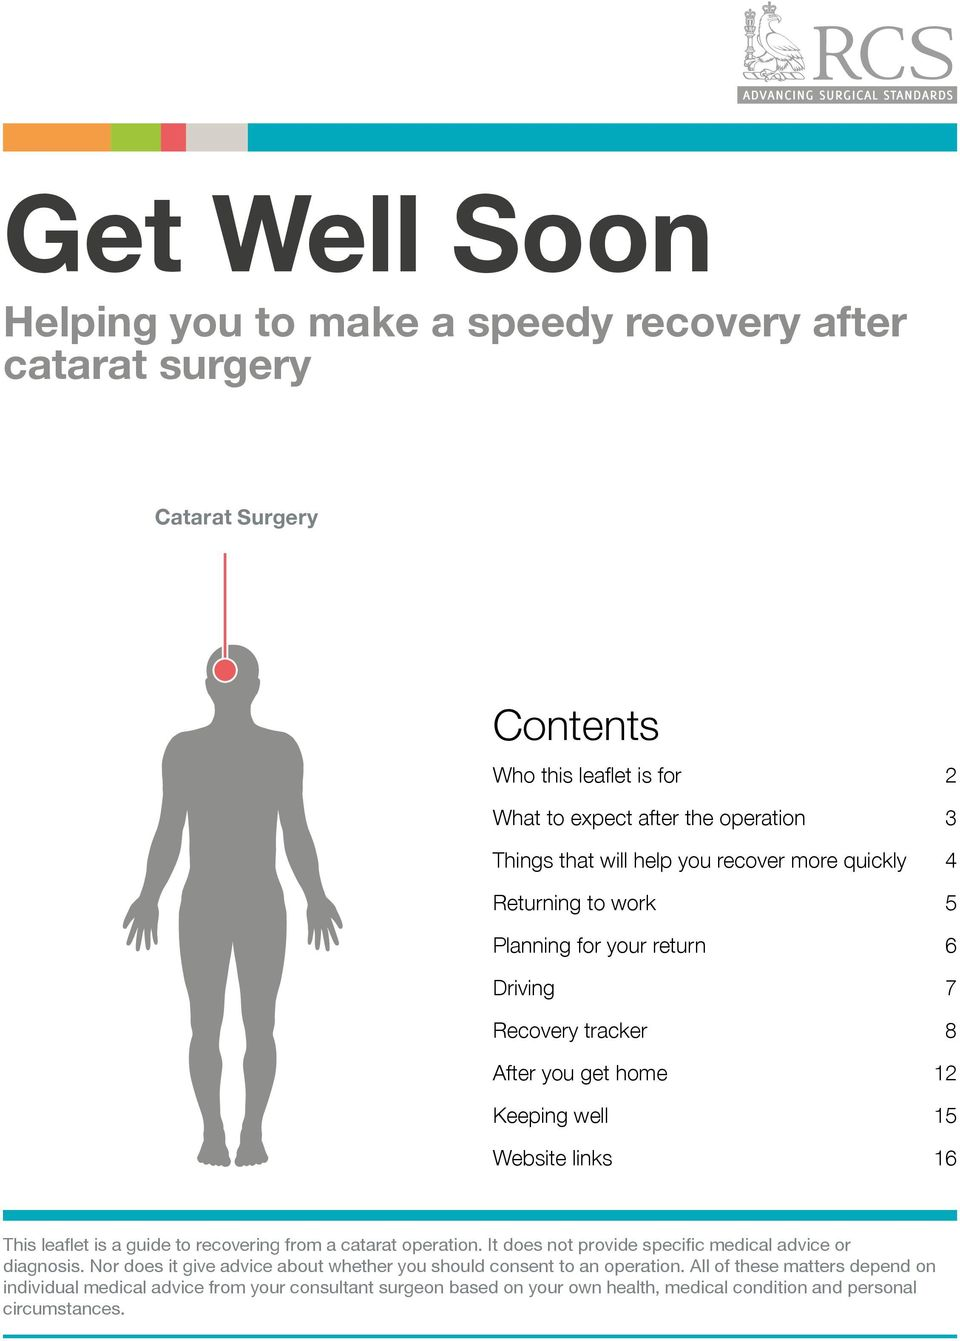 is a guide to recovering from a catarat operation. It does not provide specific medical advice or diagnosis.